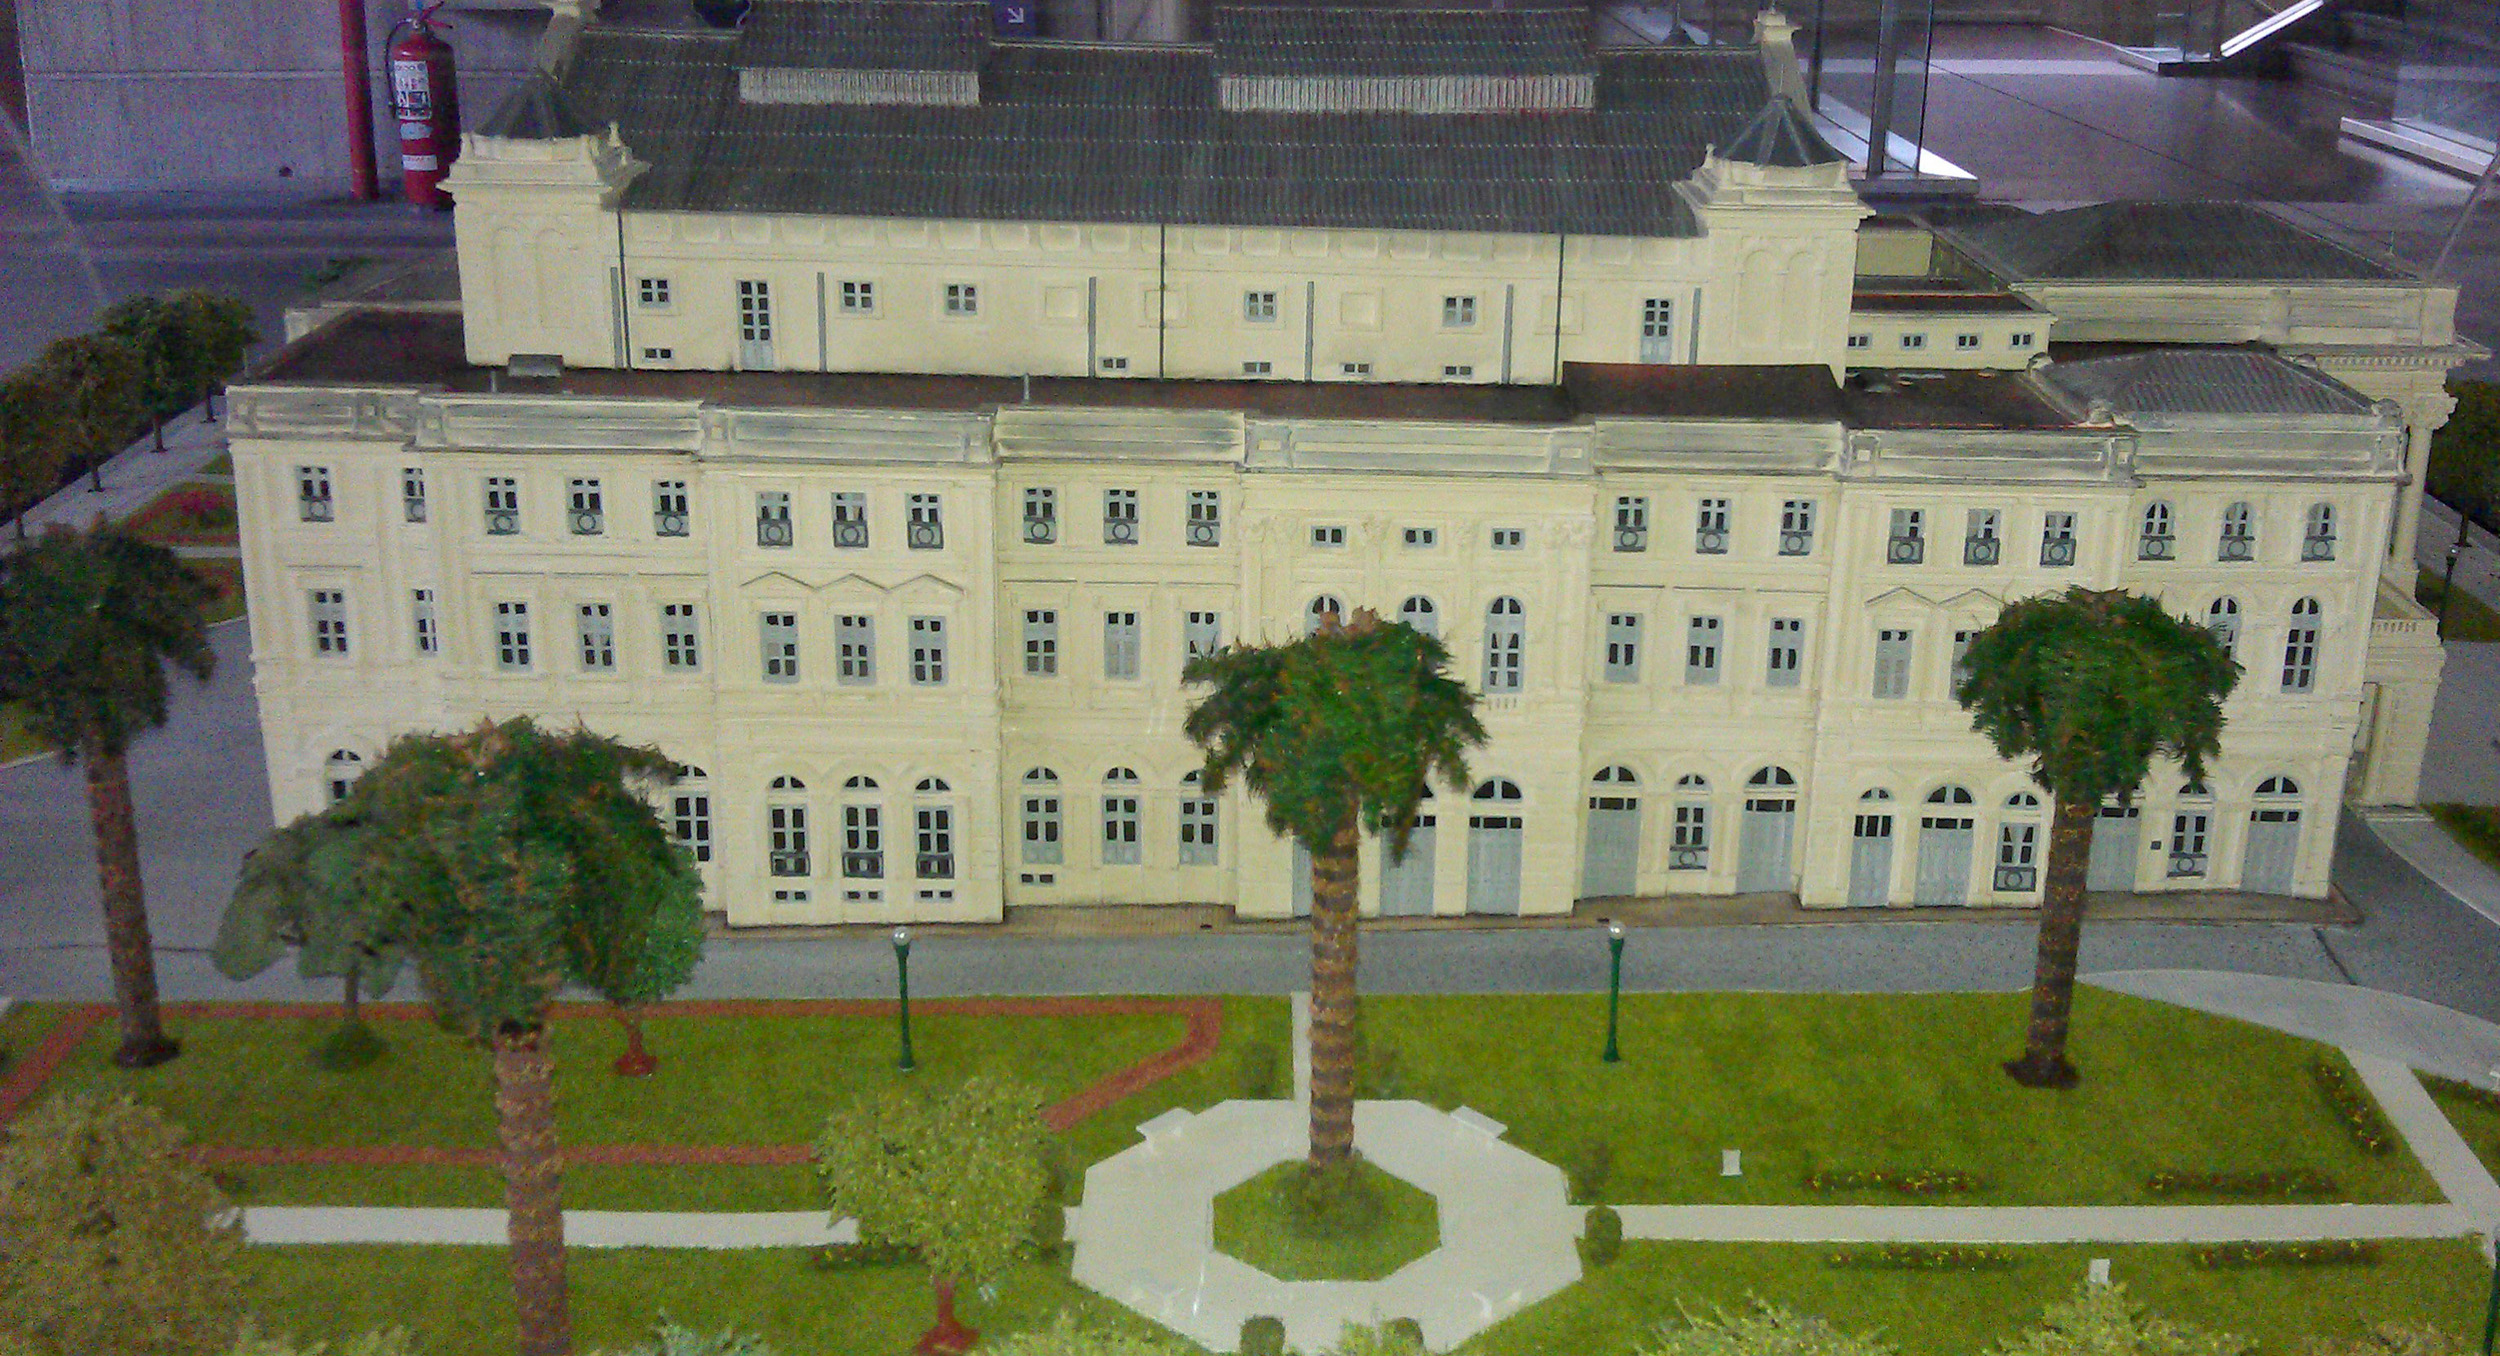 Model of the original theater.